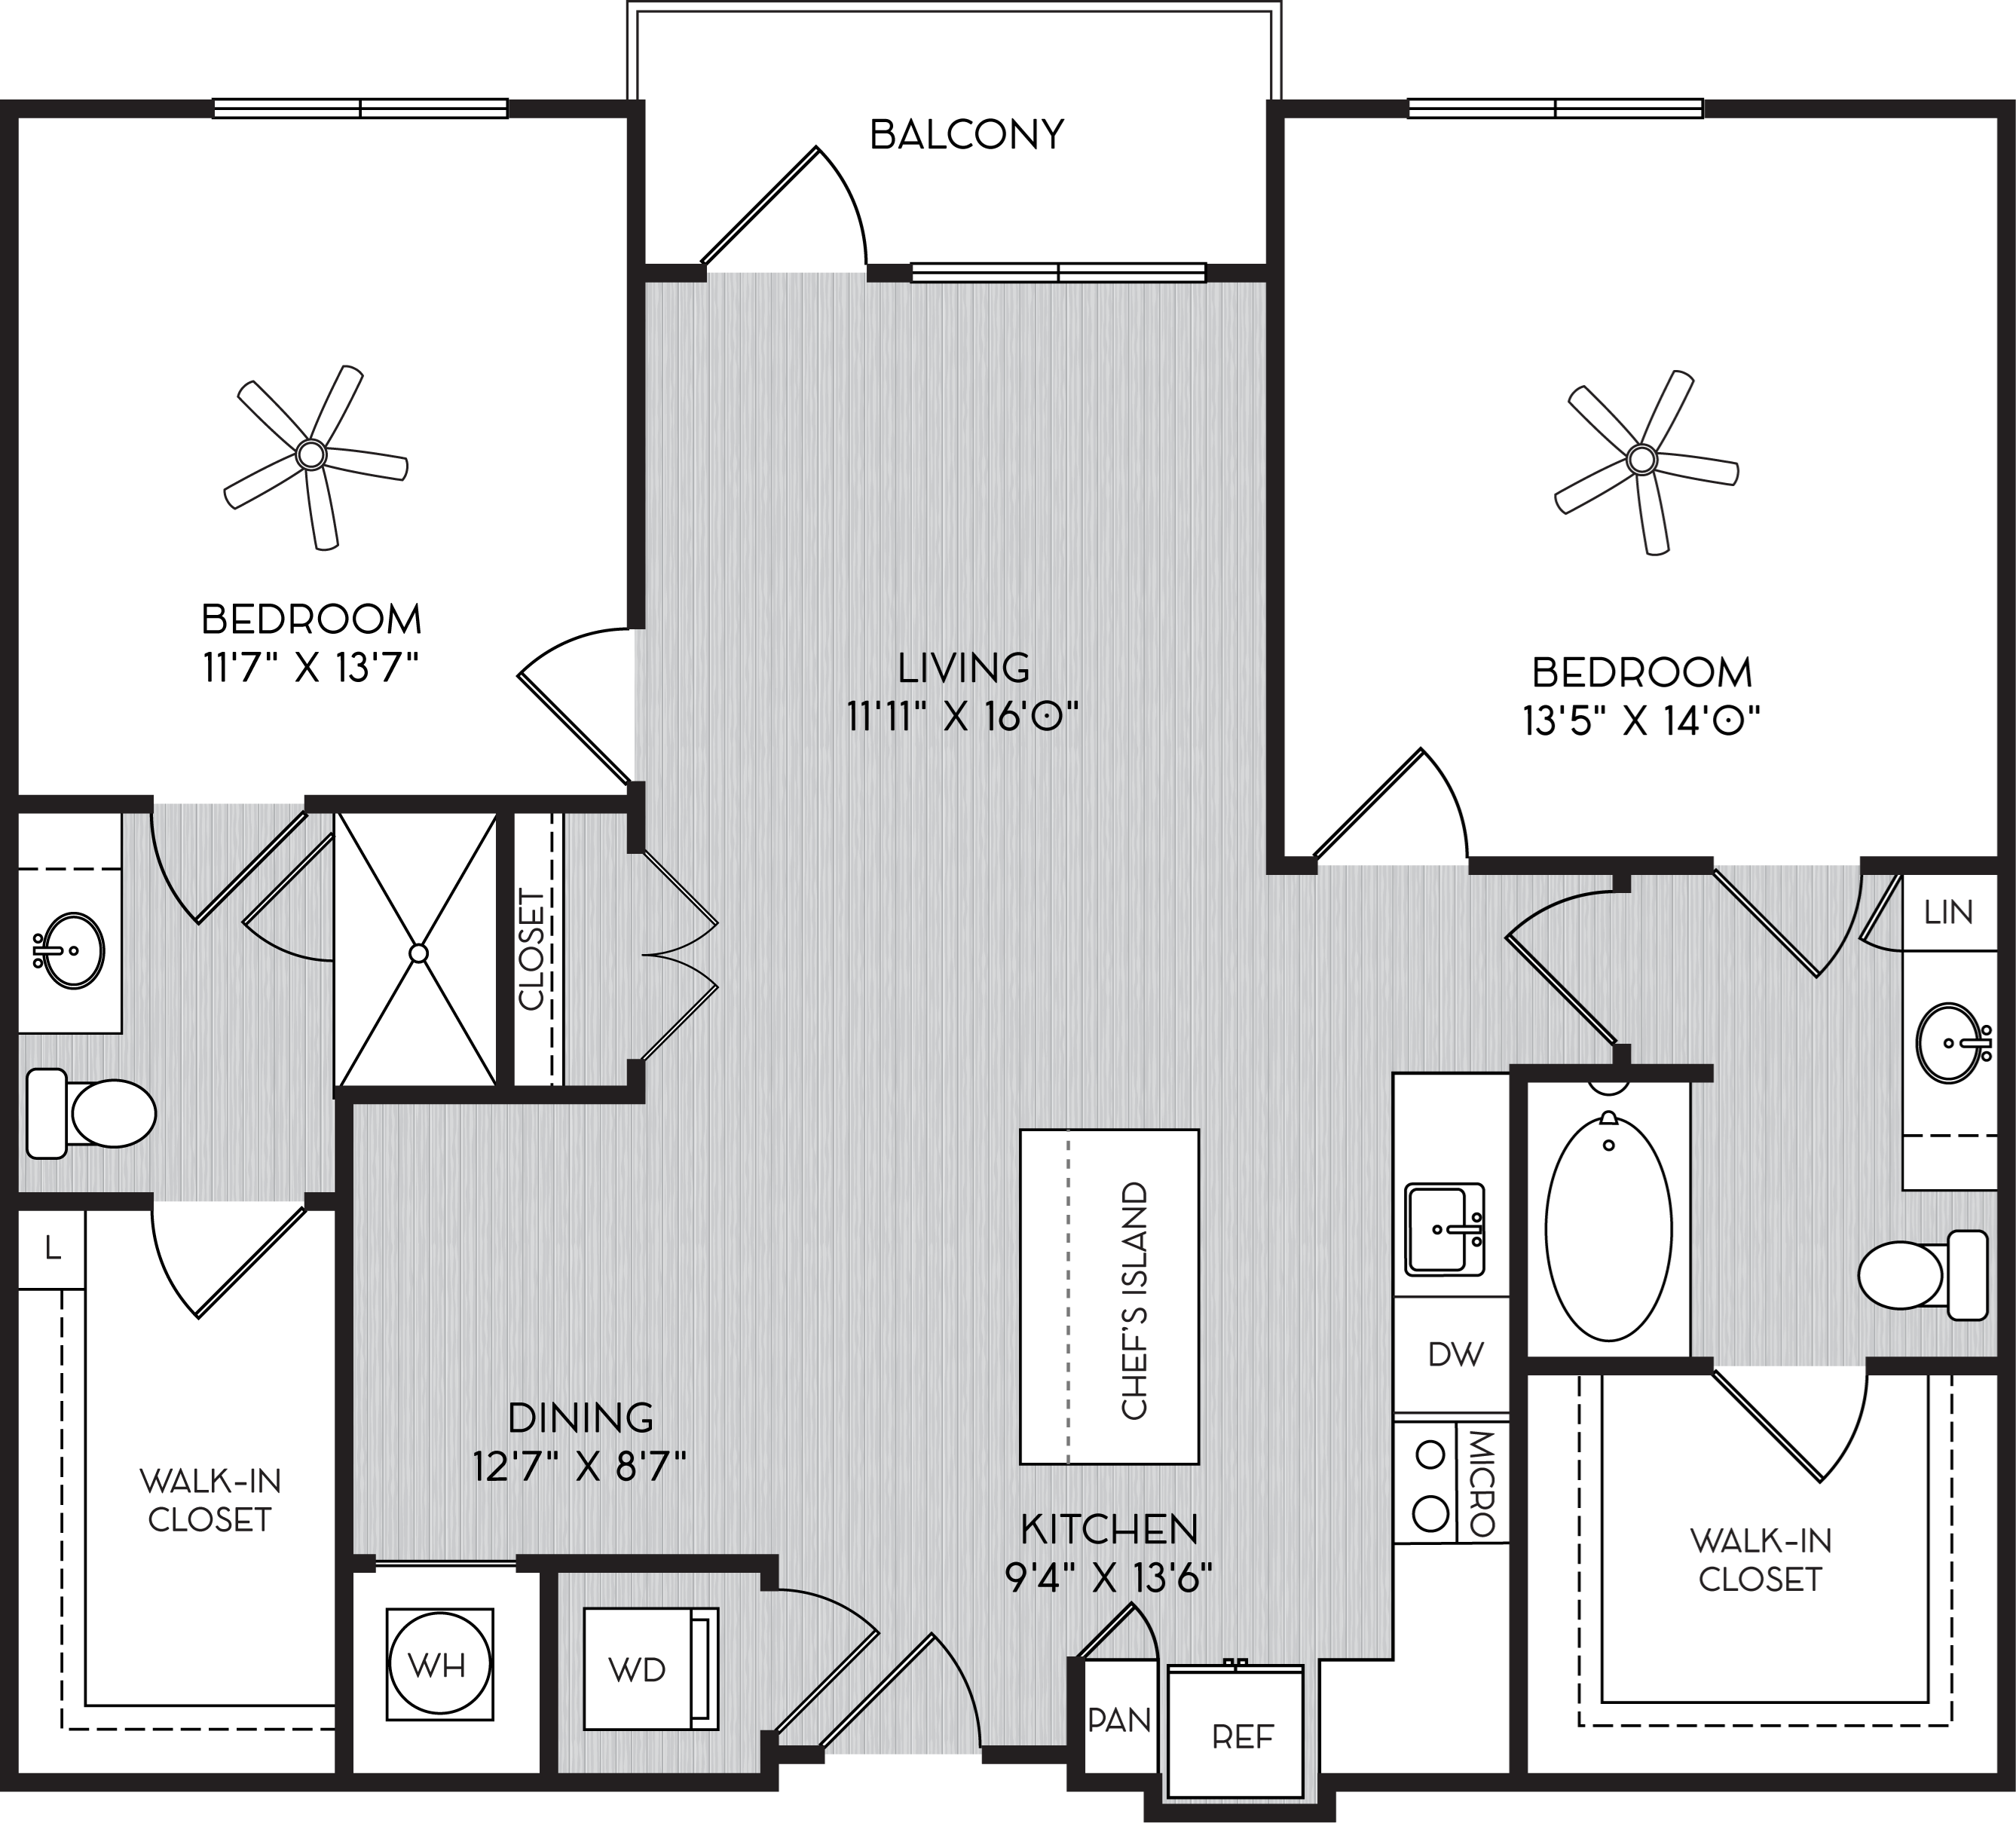 B1f Two Bedroom Floor Plan with Balcony at Apartment Homes For Rent in Vinings, GA